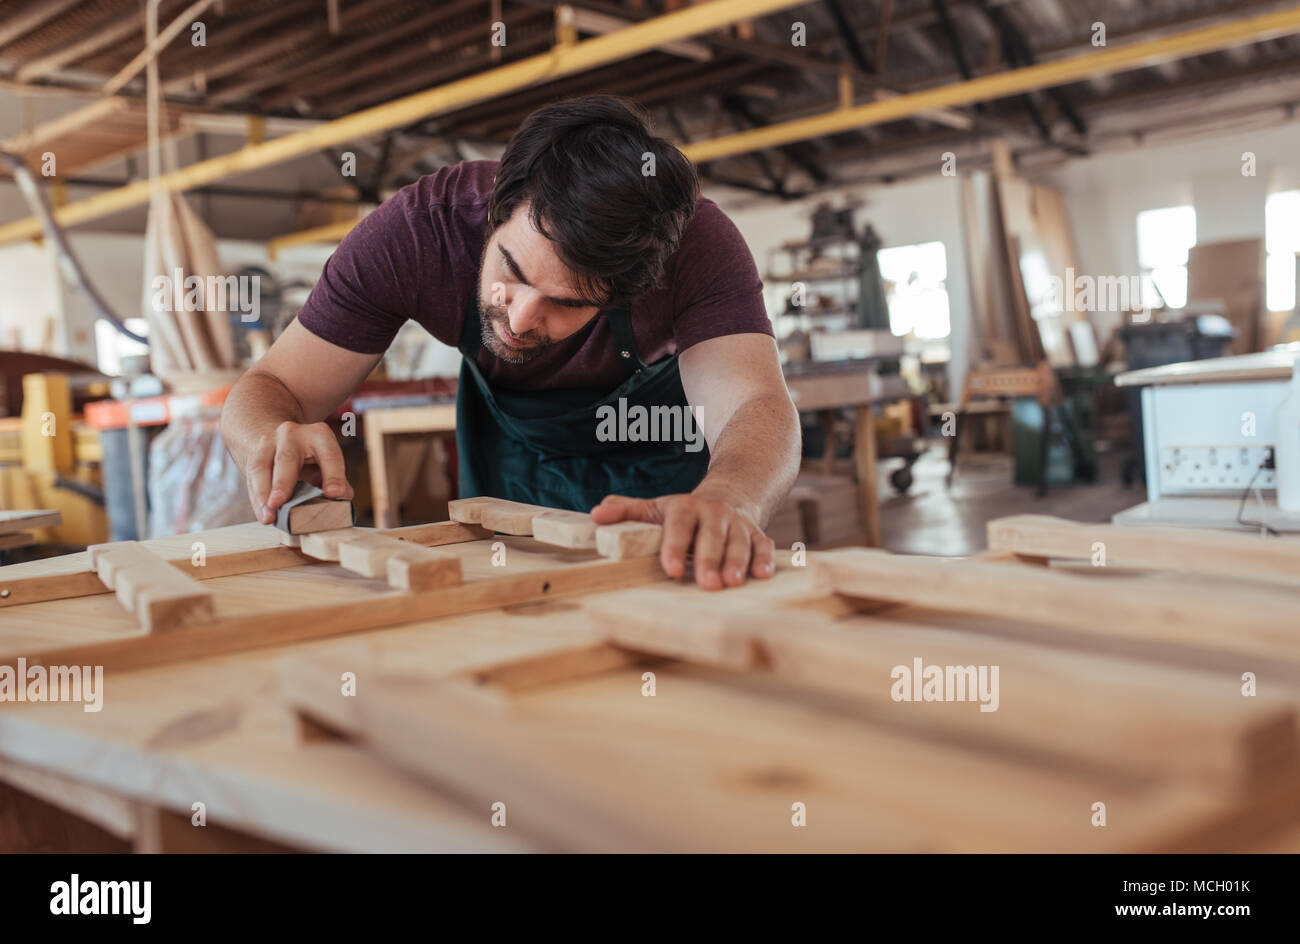 Skilled Young Carpenter With A Beard Hand Sanding Pieces Of A Wooden